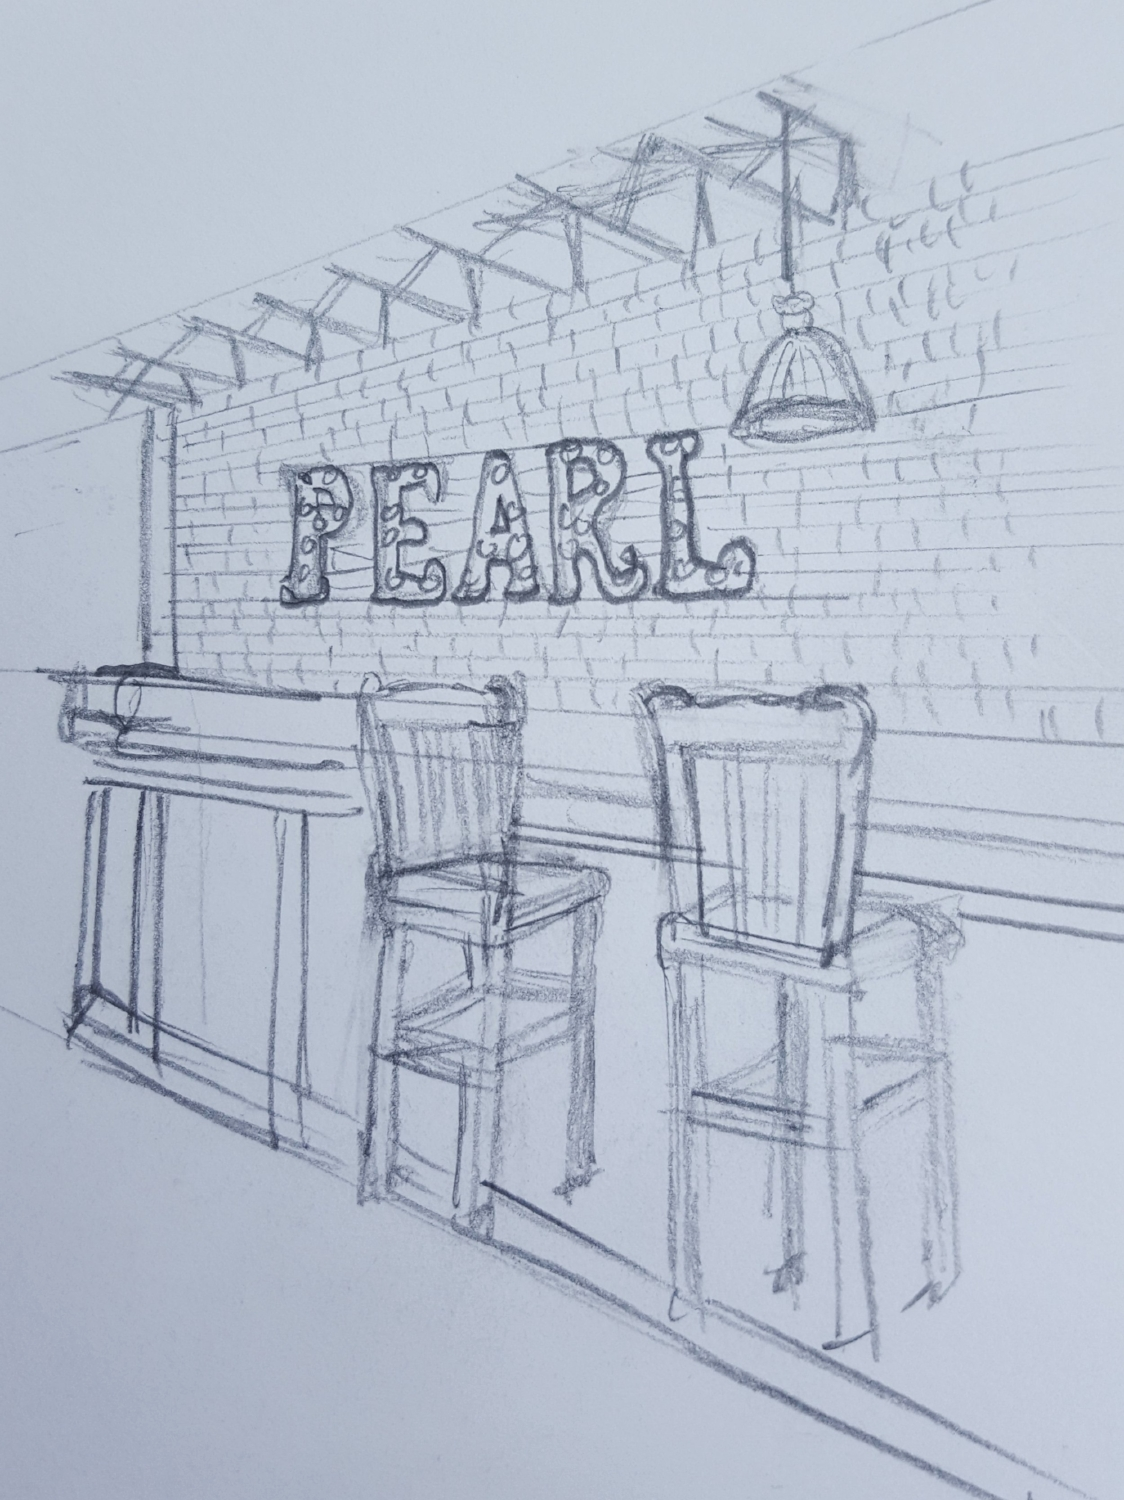 Pearl in Richmond was where they had their first date.